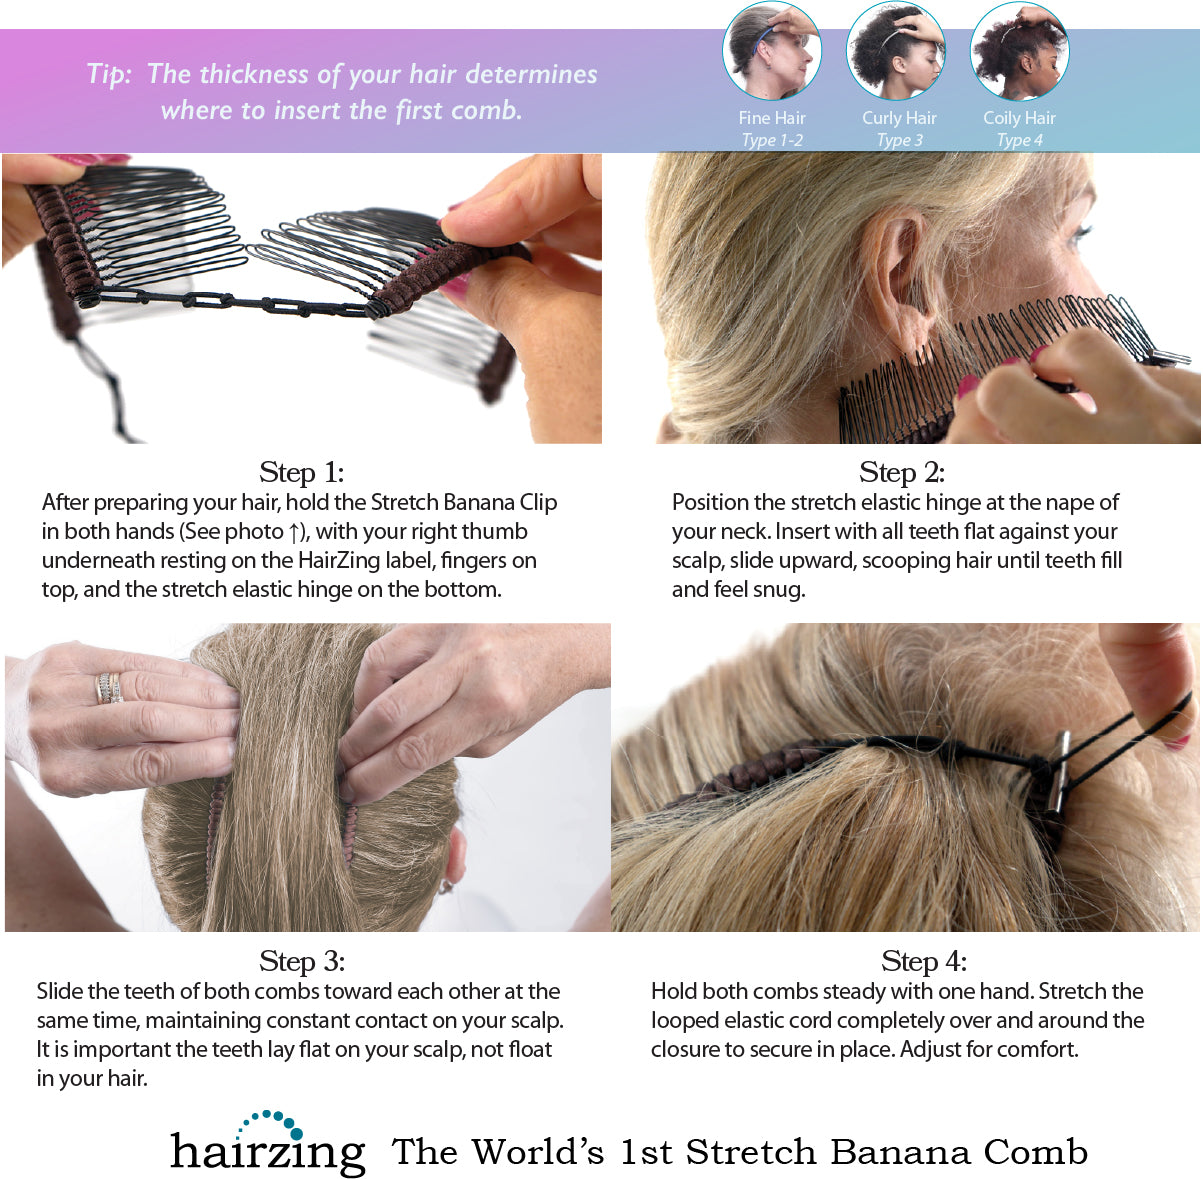 HairZing Stretch Banana Clip Instructions for Fine Thin Hair